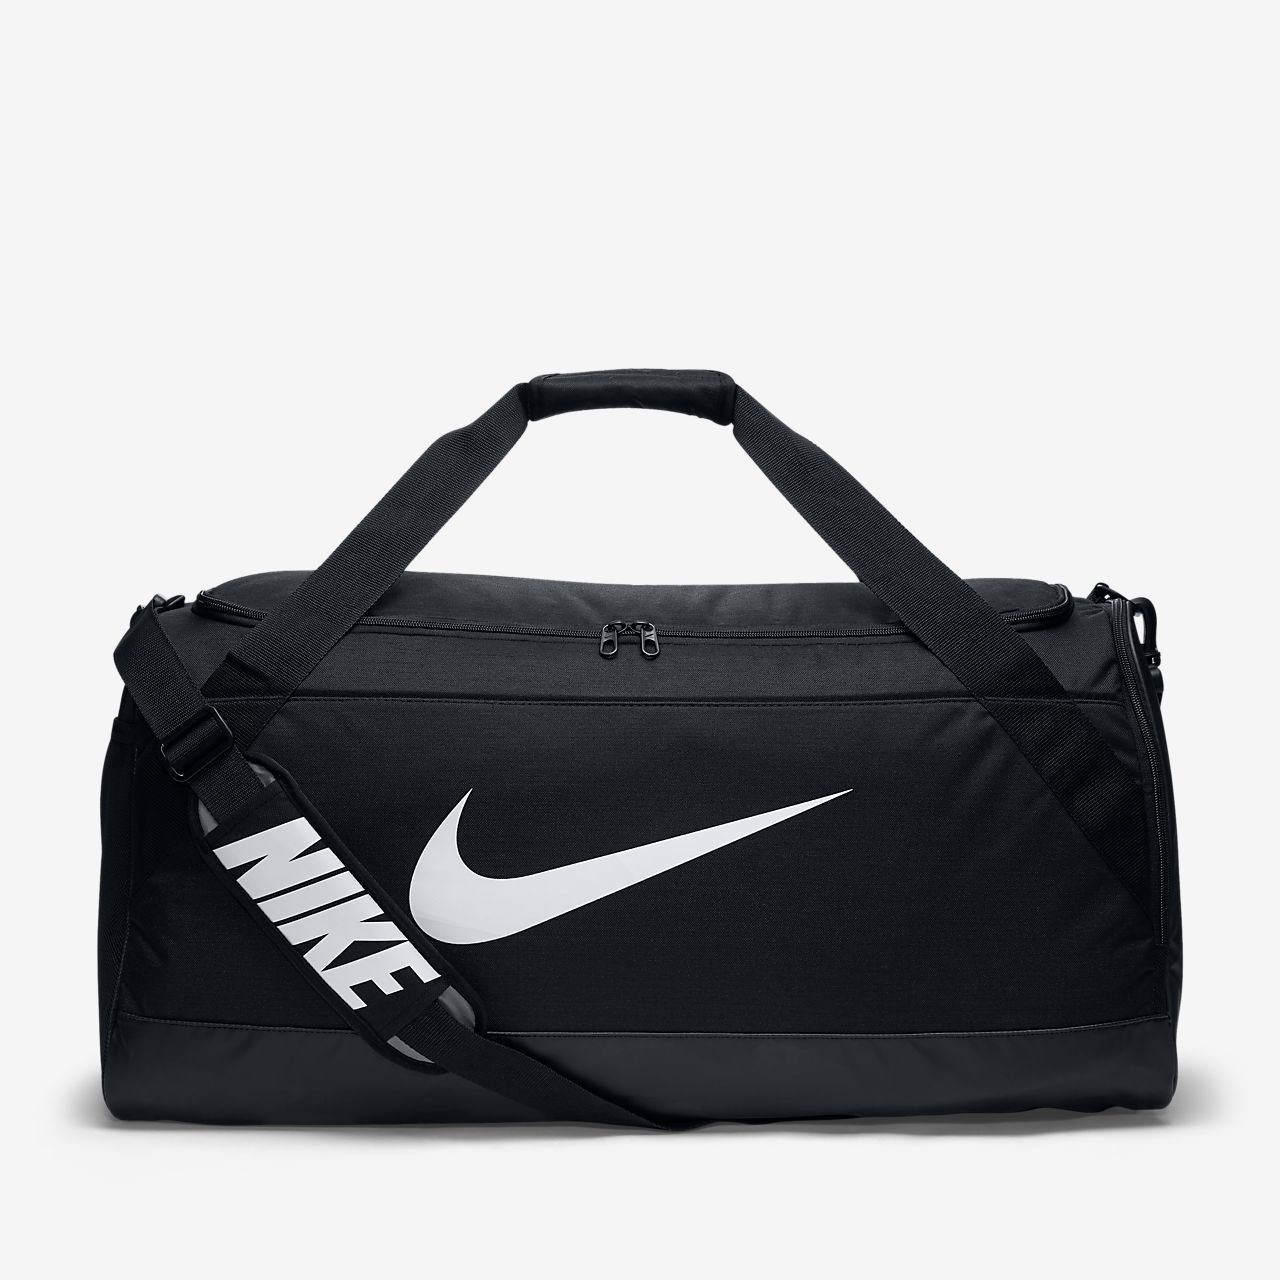 97779fbb64 Nike Brasilia (Large) Training Duffel Bag. Nike.com GB